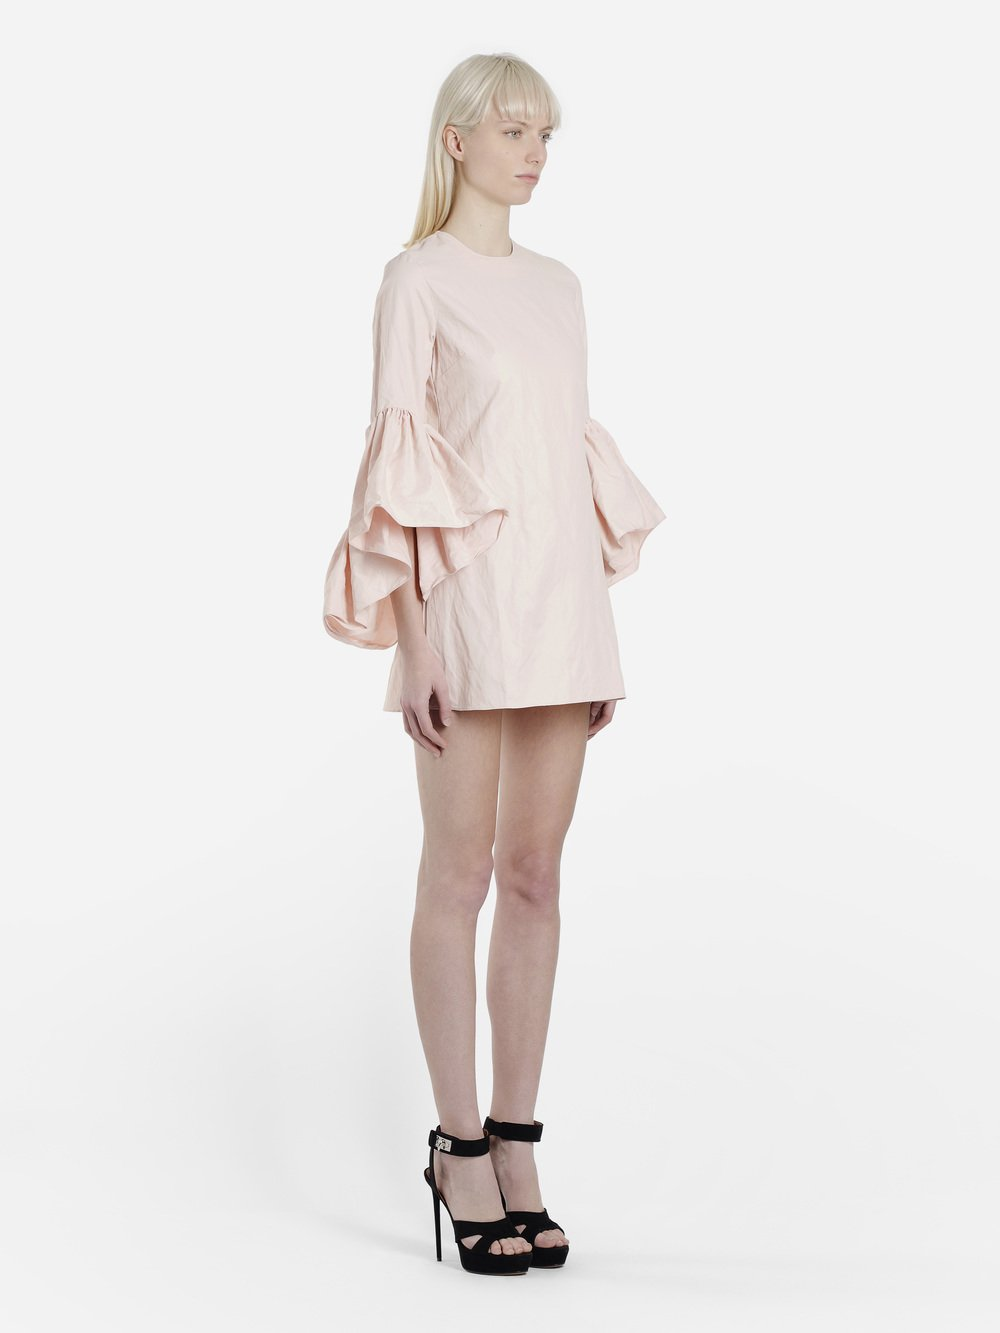 Ss18dr0042tft pale pink 18 01 17 5521